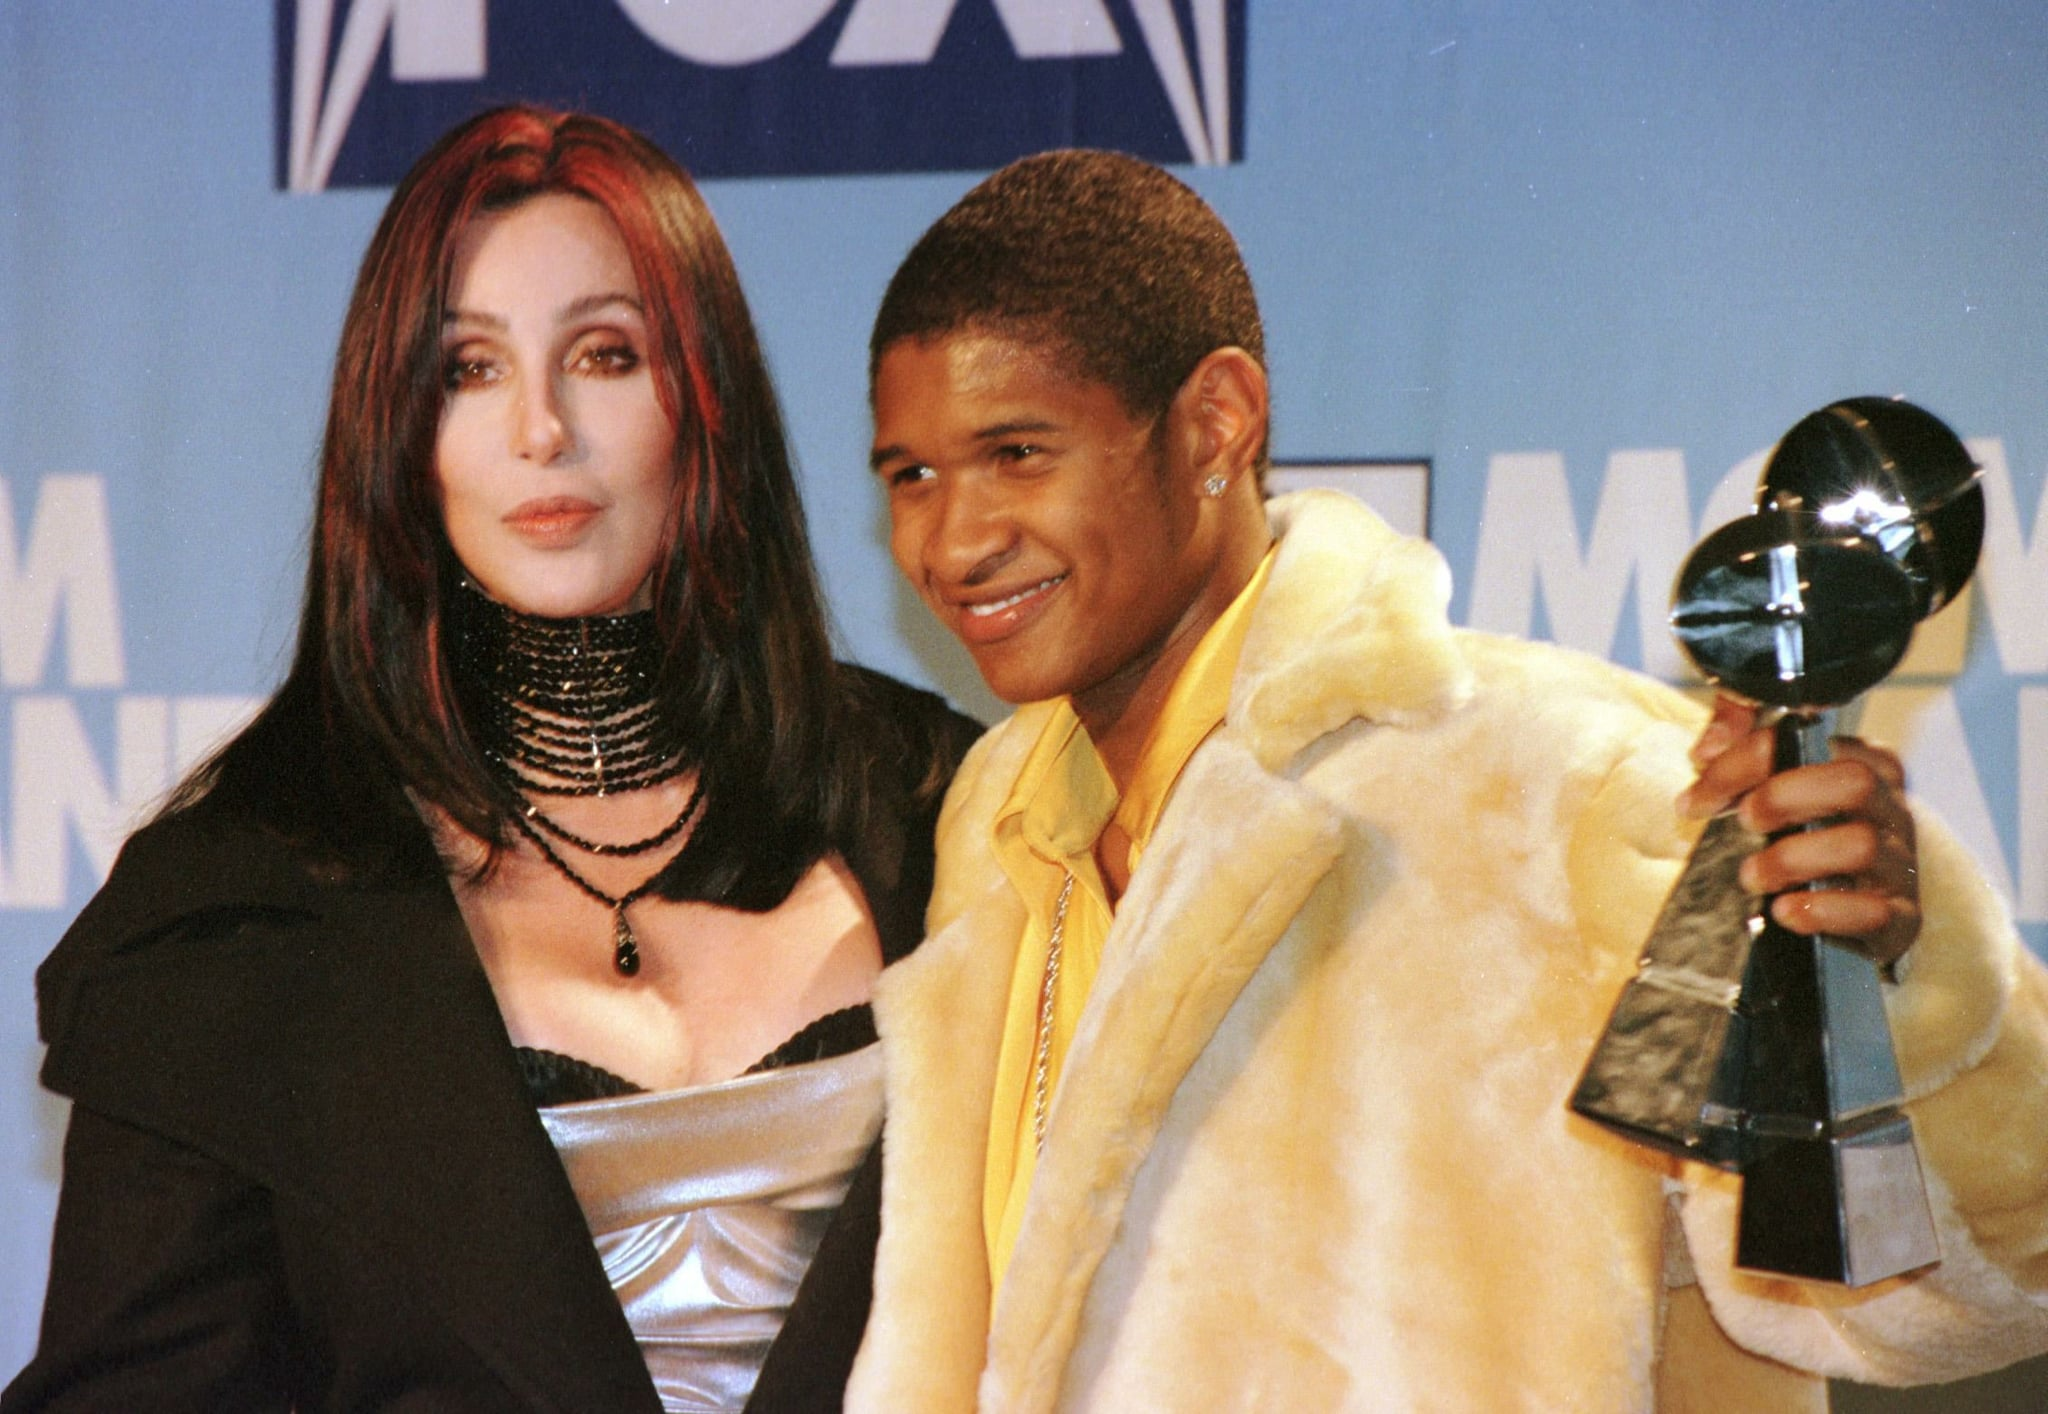 Usher showed off his artist of the year Billboard award next to Cher in December 1998.